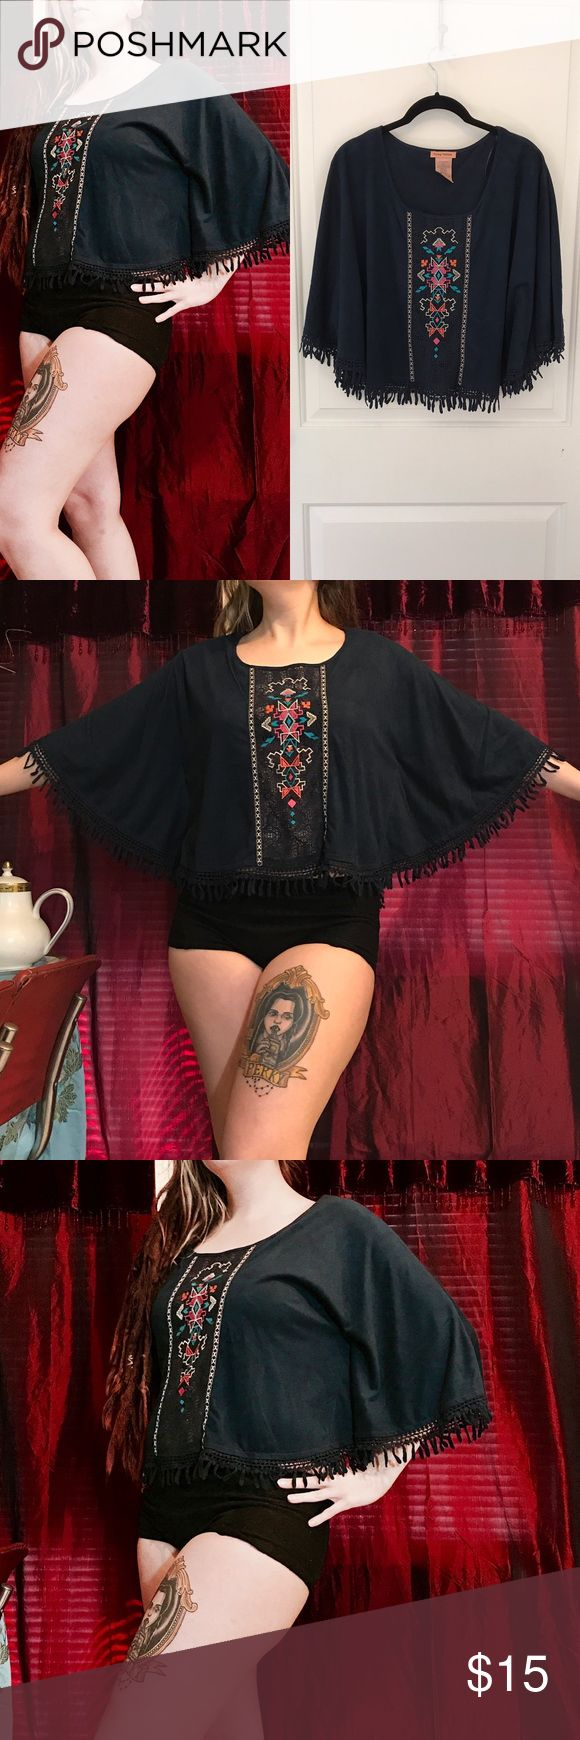 Aztec batwing top Aztec, gypsy, batwing top. Very very soft material. Forever 21, Wet Seal, Rat Baby, Alternative Fashion, Gypsy Warrior, Hot Topic, Maurice's, Nasty Gal Check out my other listings and bundle to save! 💀👻 🖤💕 Offers welcome 💕🖤 Flying Tomato Tops Tunics